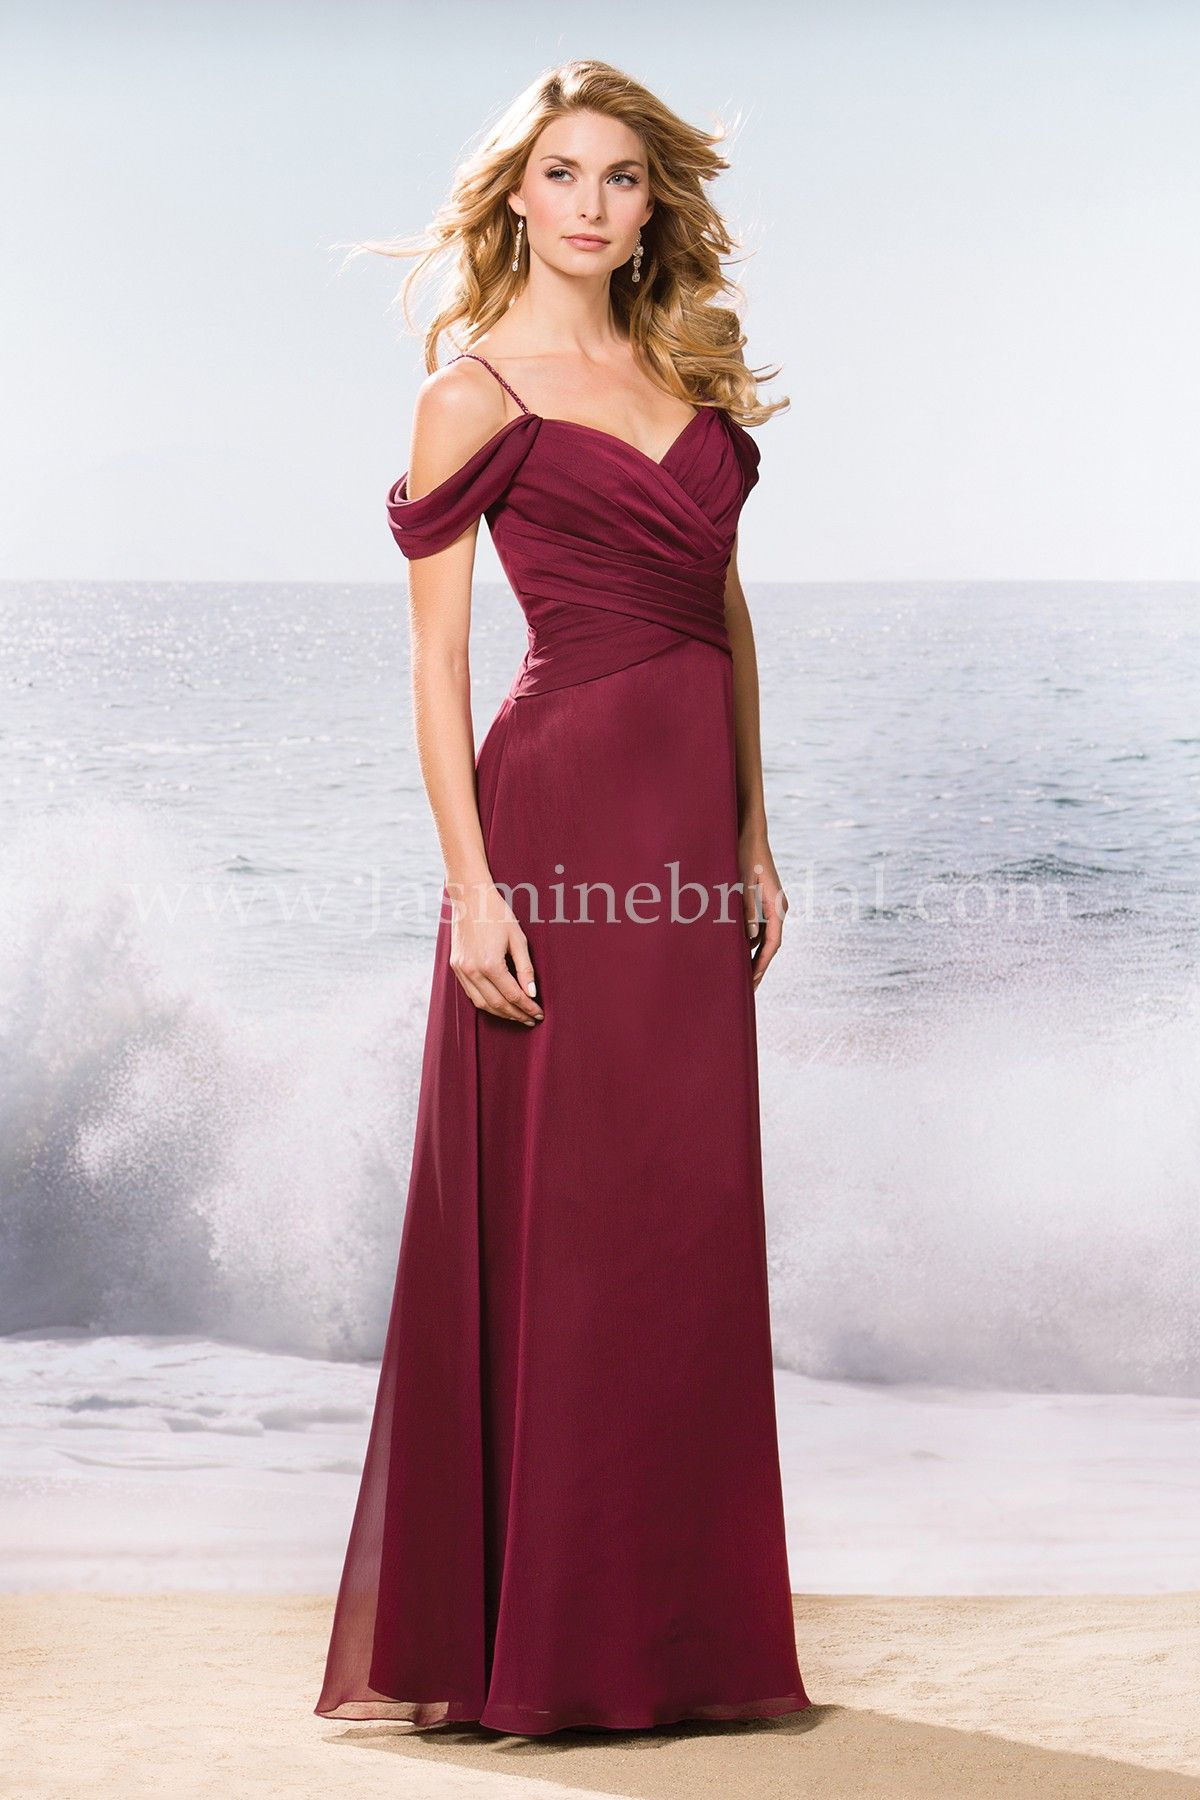 Jasmine bridal bridesmaid dress belsoie style l174057 in cranberry jasmine bridal bridesmaid dress belsoie style l174057 in cranberry versatility and elegance come together ombrellifo Choice Image